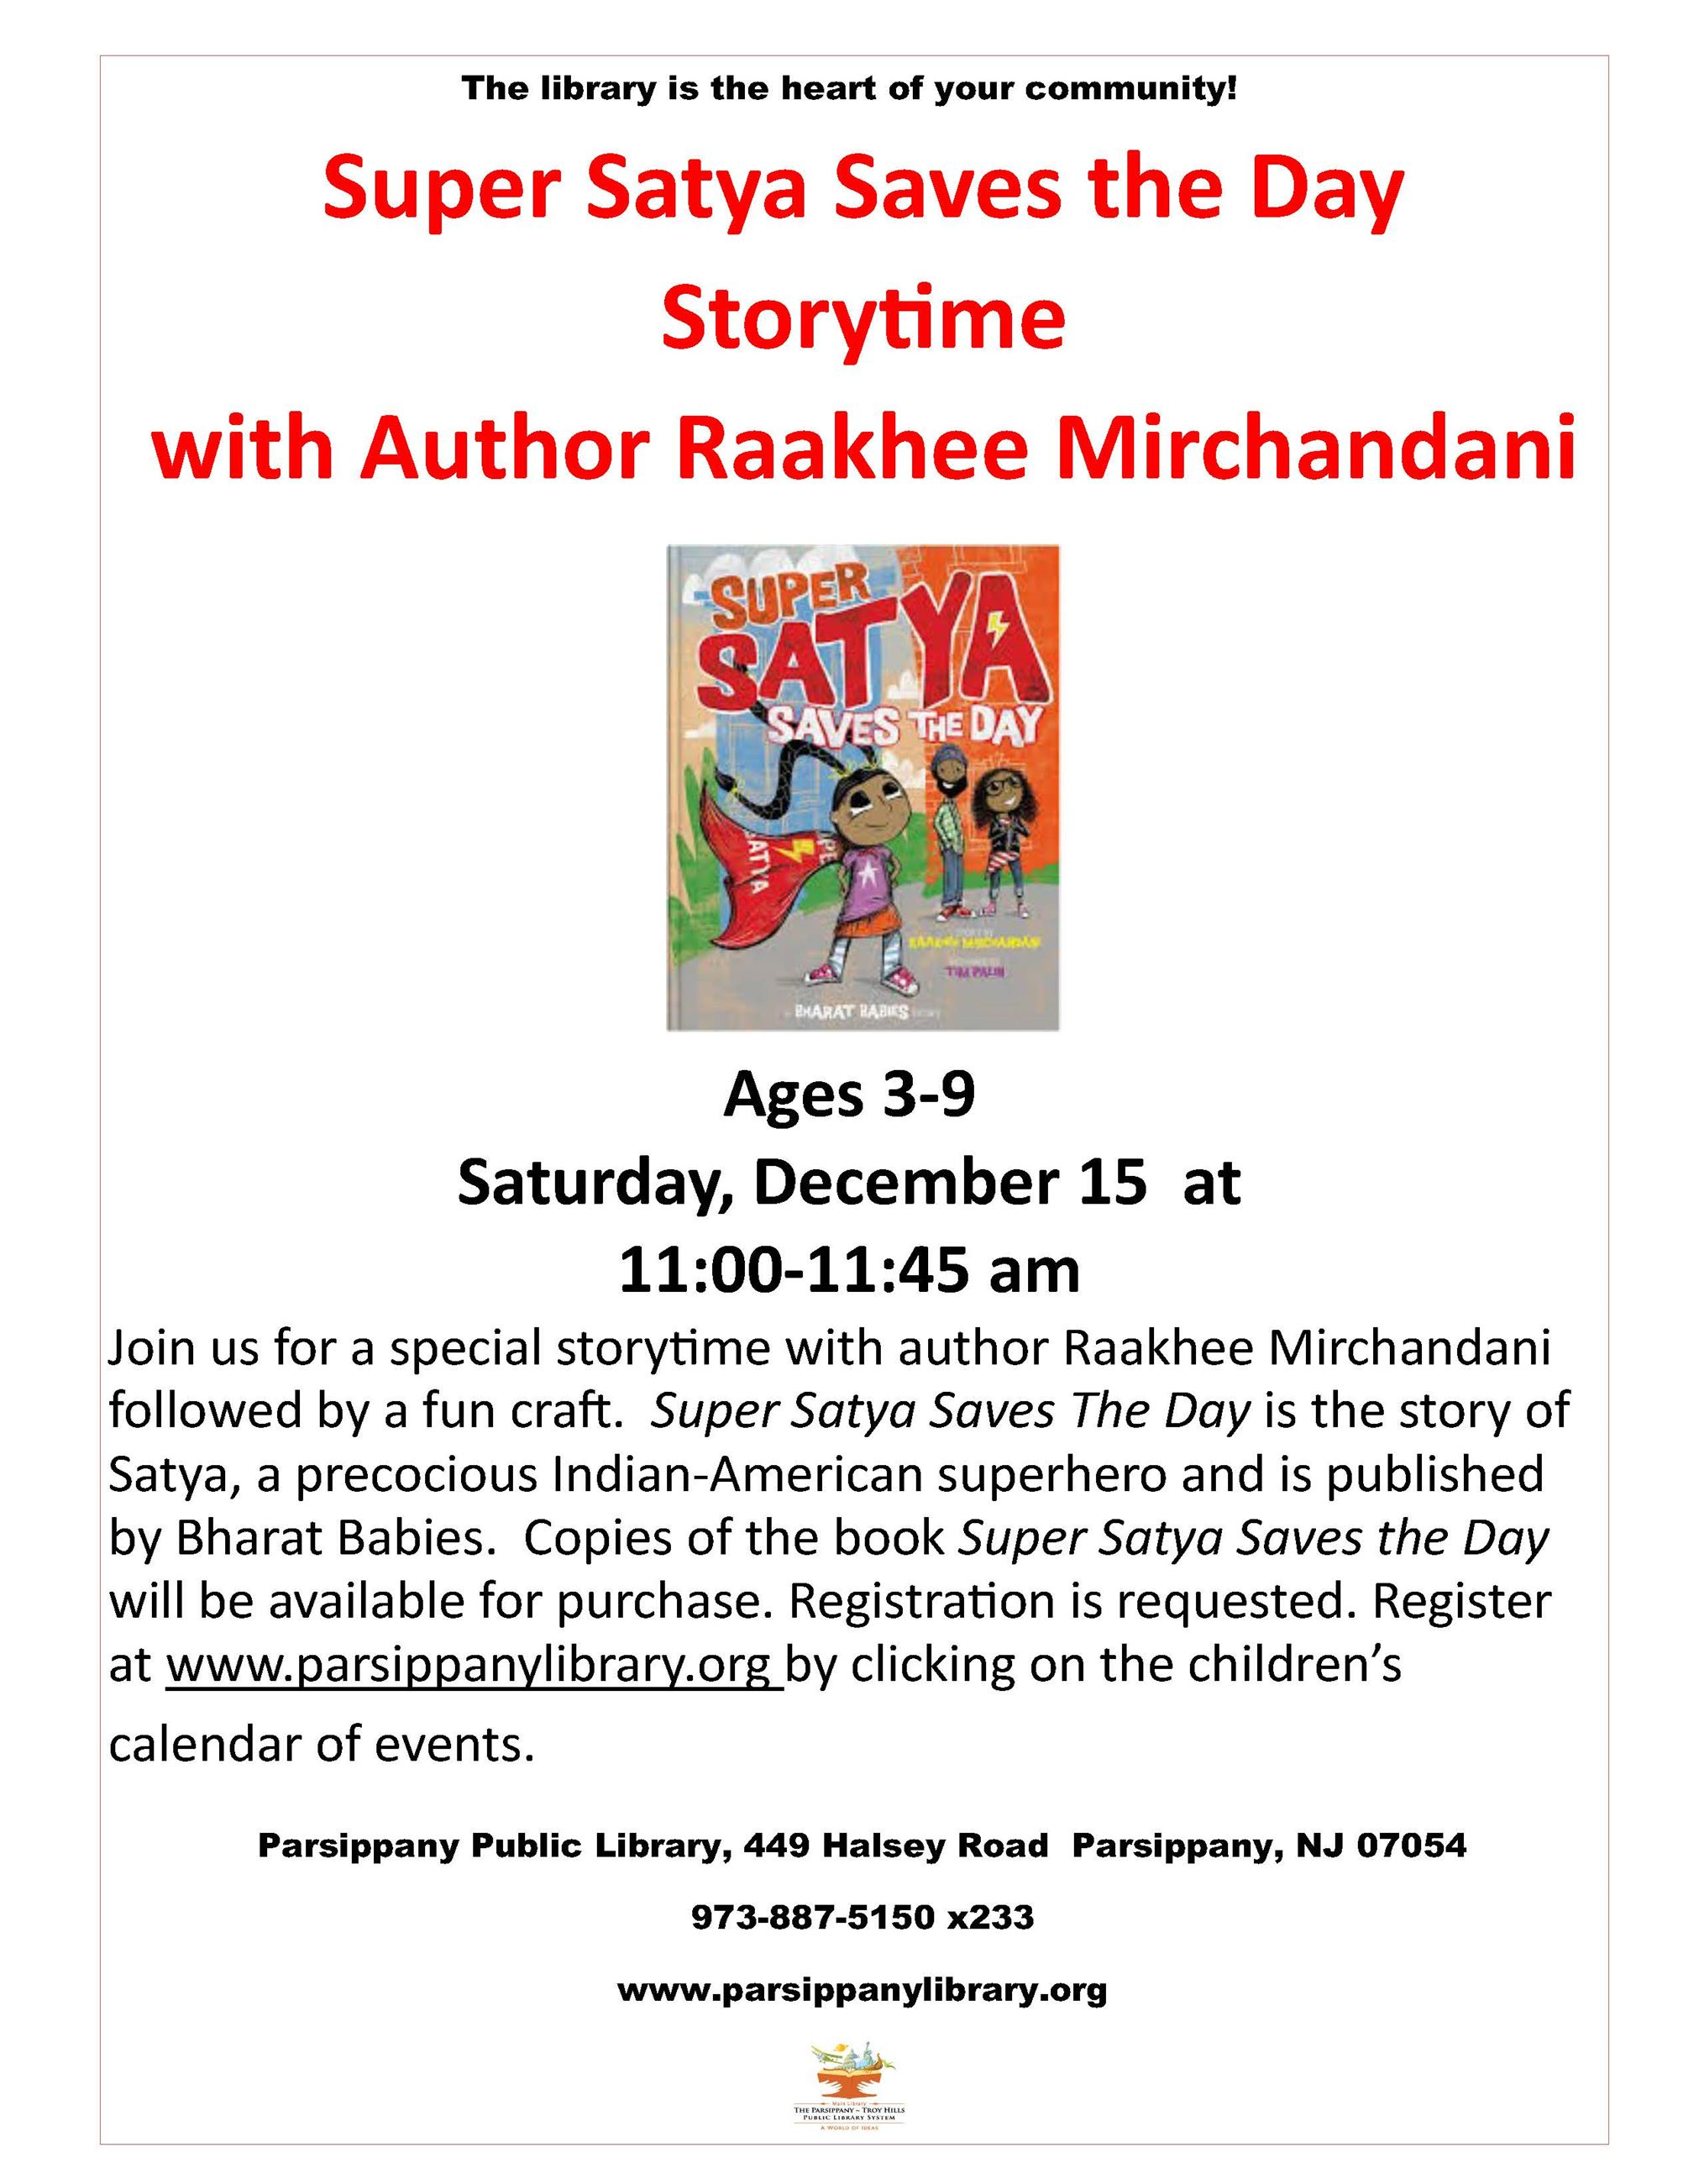 Super Satya Author visit